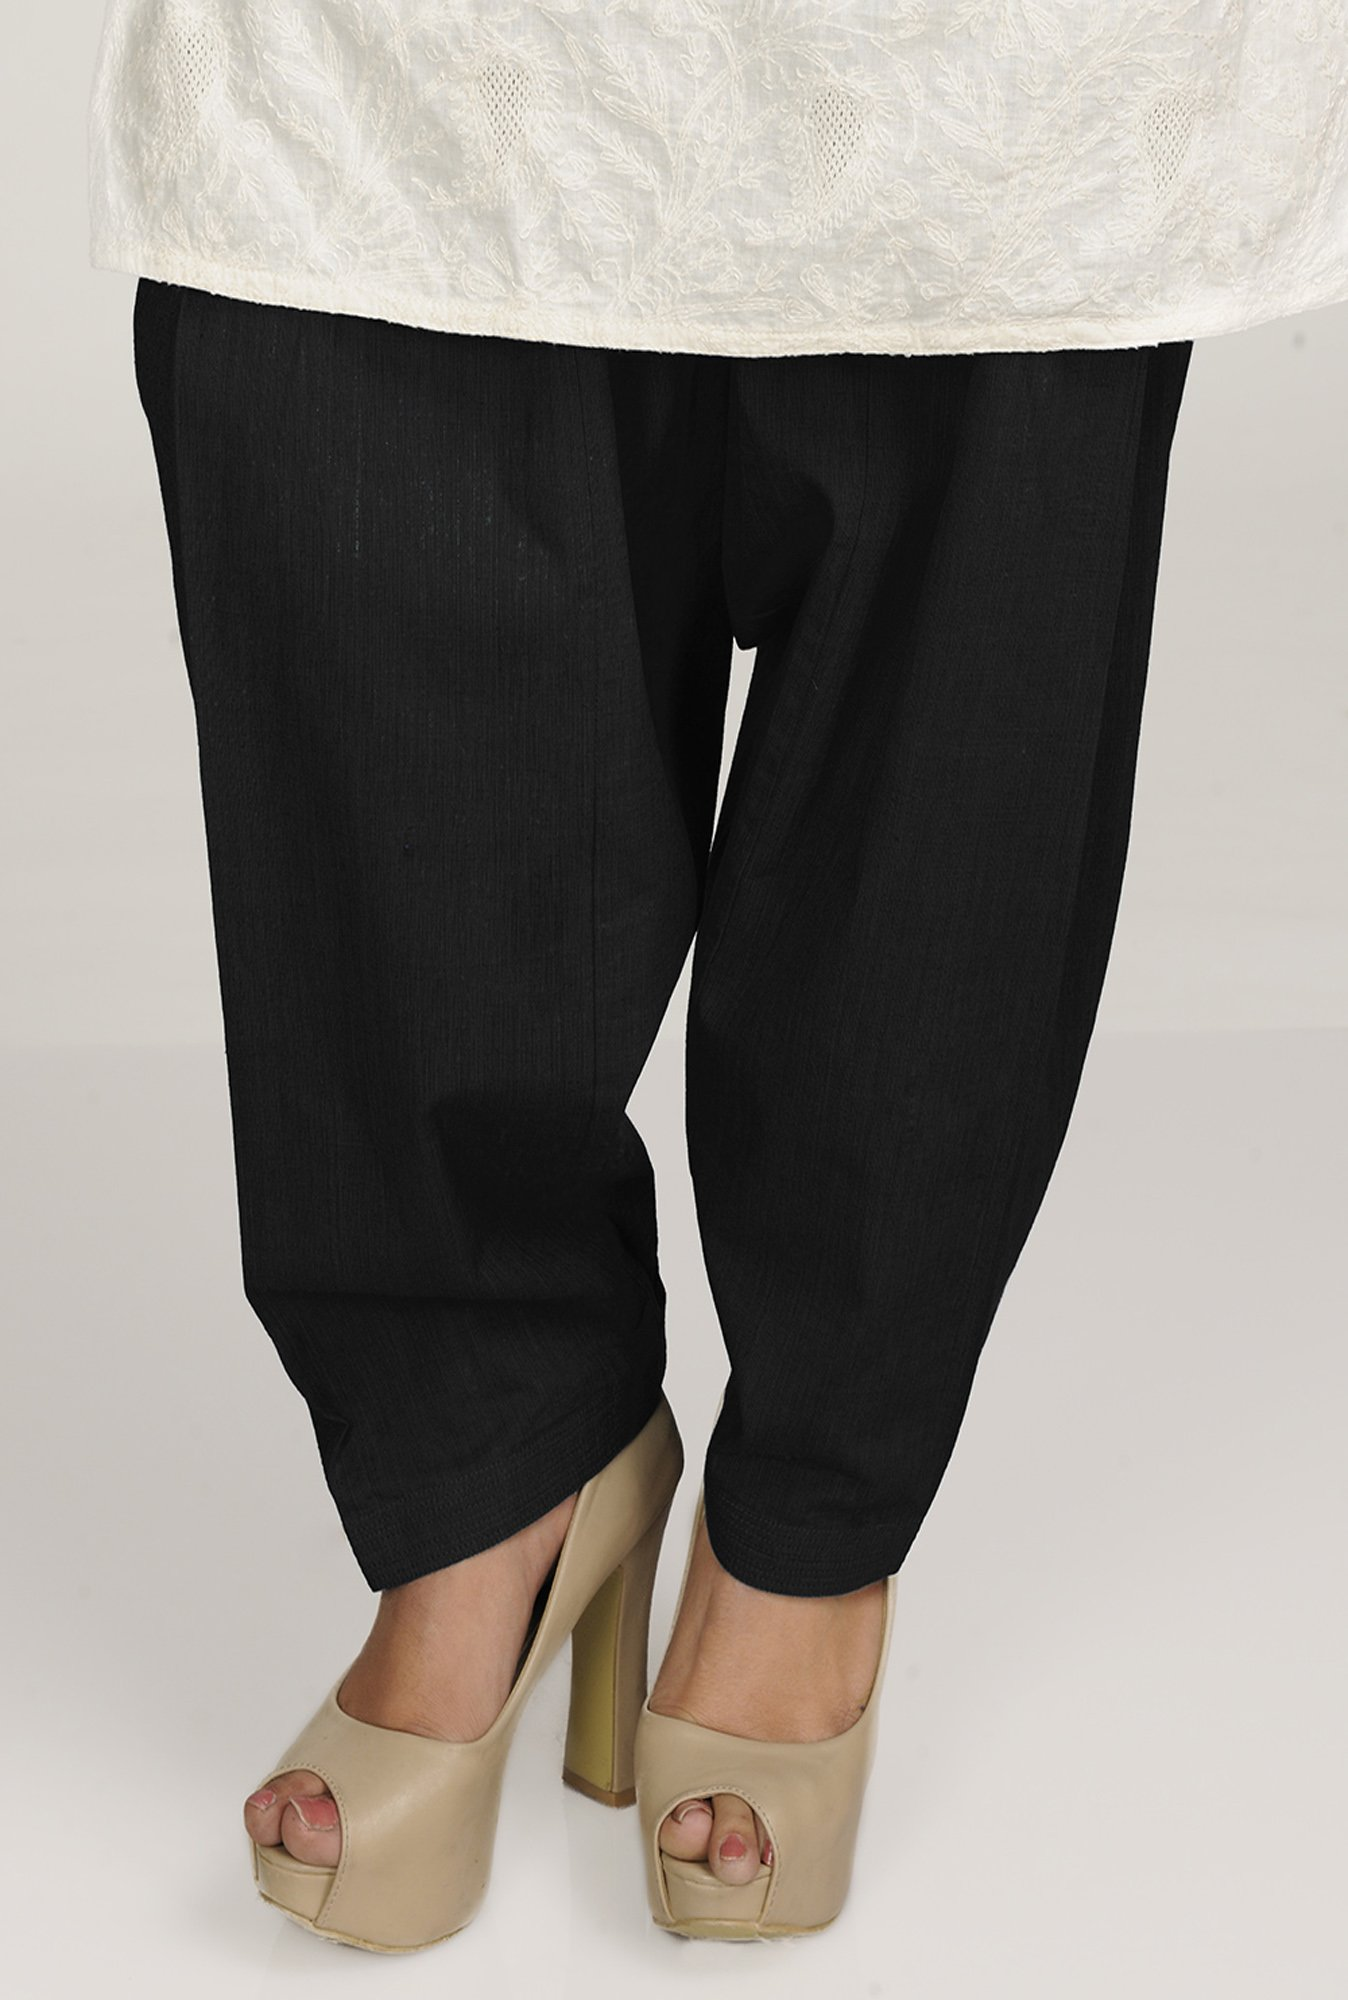 Fabindia Black Solid Patiala